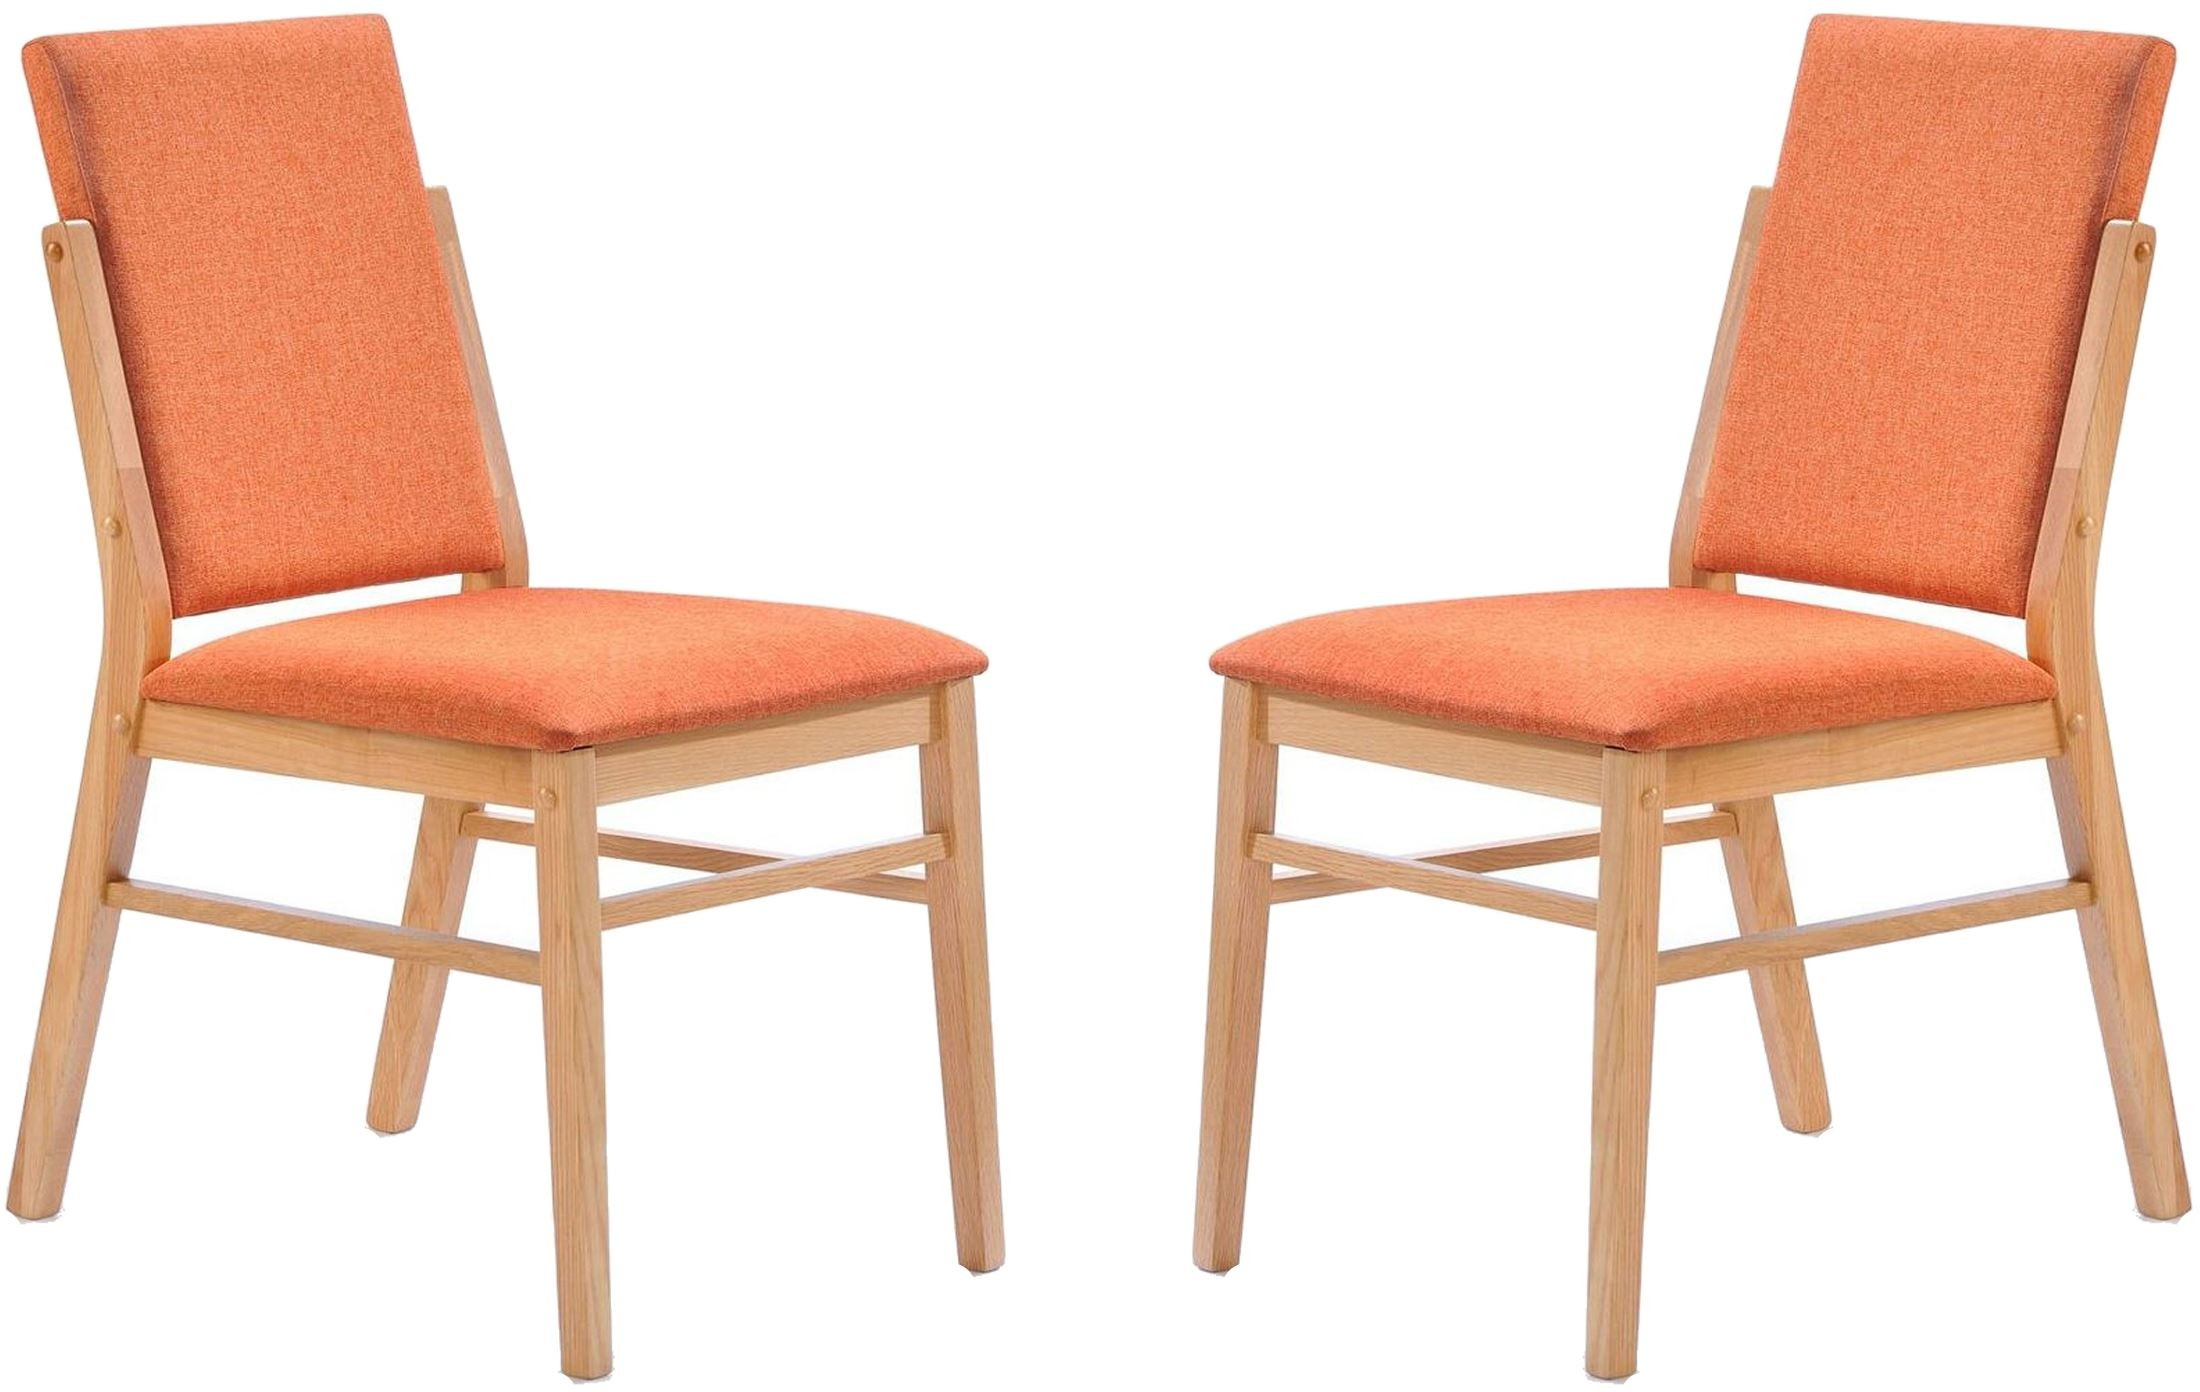 orange side chair seat covers with elastic simply scandinavian bedford set of 2